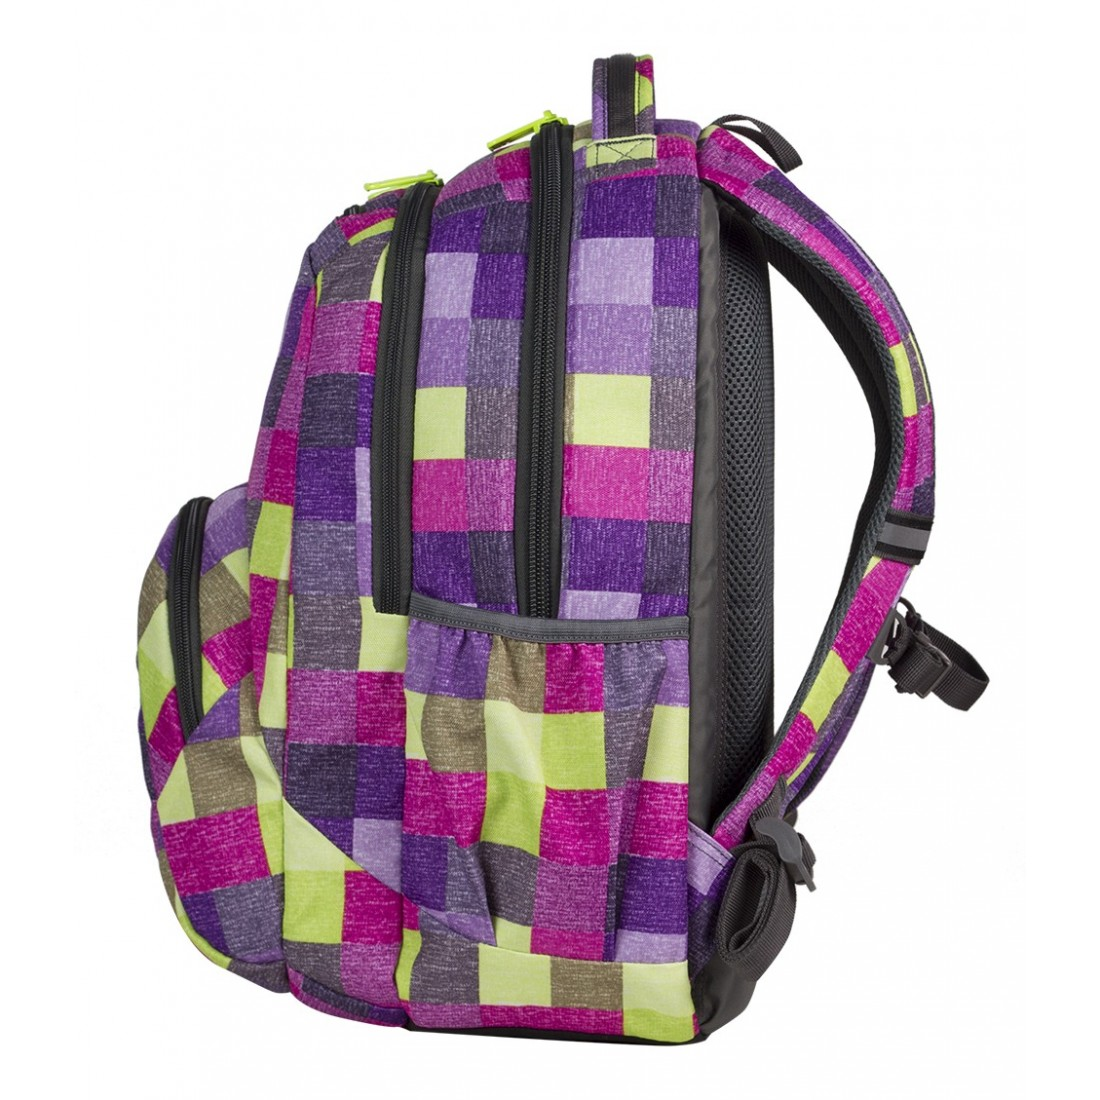 Plecak młodzieżowy CoolPack SMASH MULTICOLOR SHADES CP 406 - plecak-tornister.pl